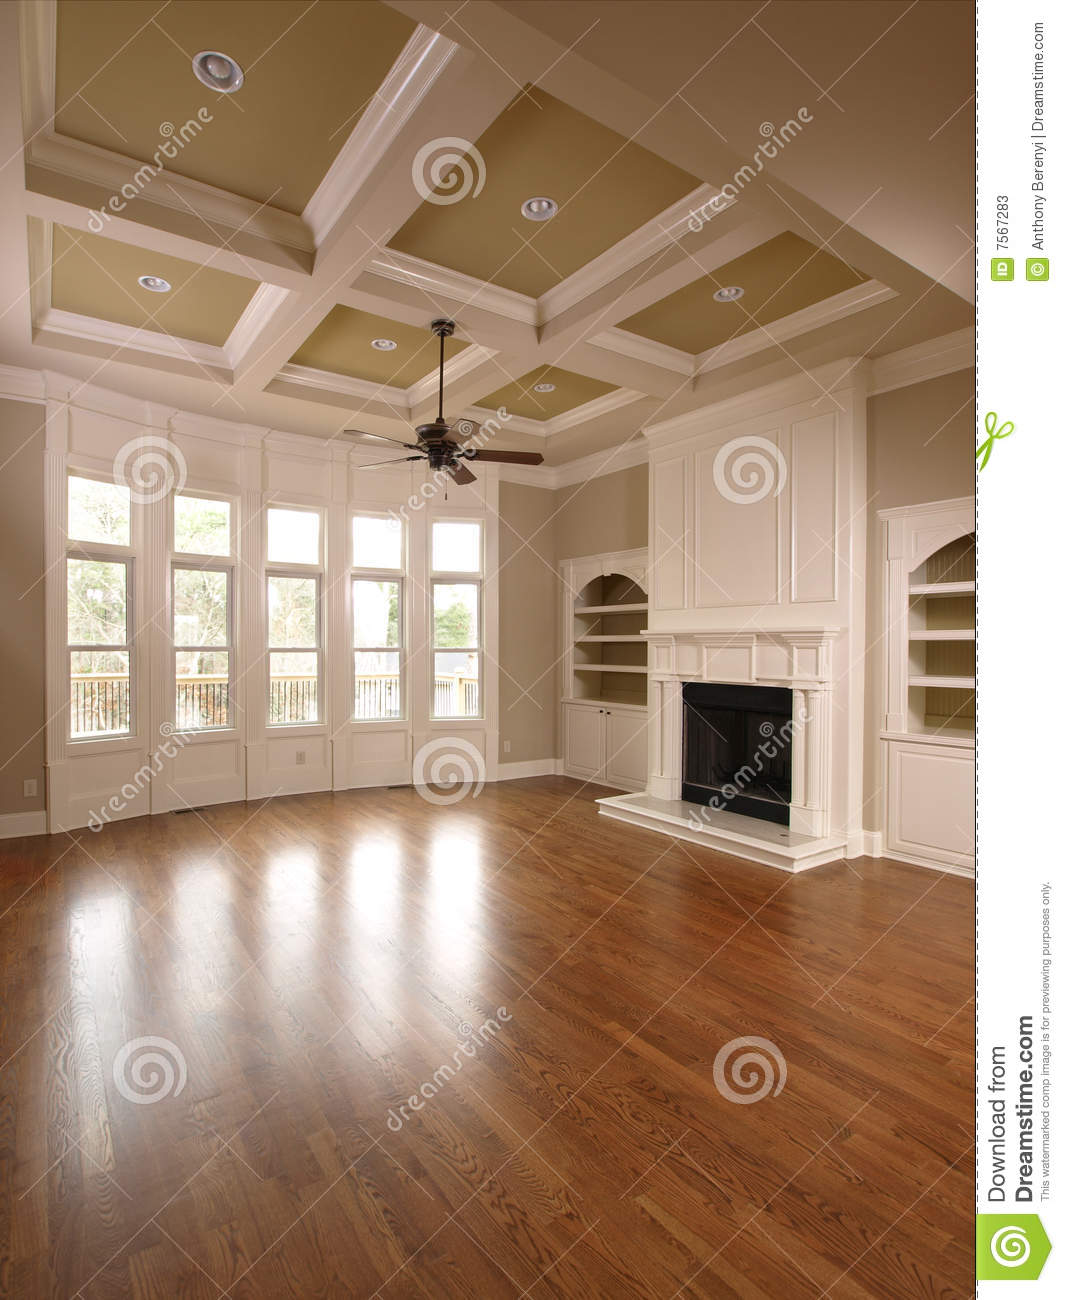 Luxury Kitchen Room Interior Bright Wooden Stock Vector: Luxury Home Interior Living Room With Windows Stock Image